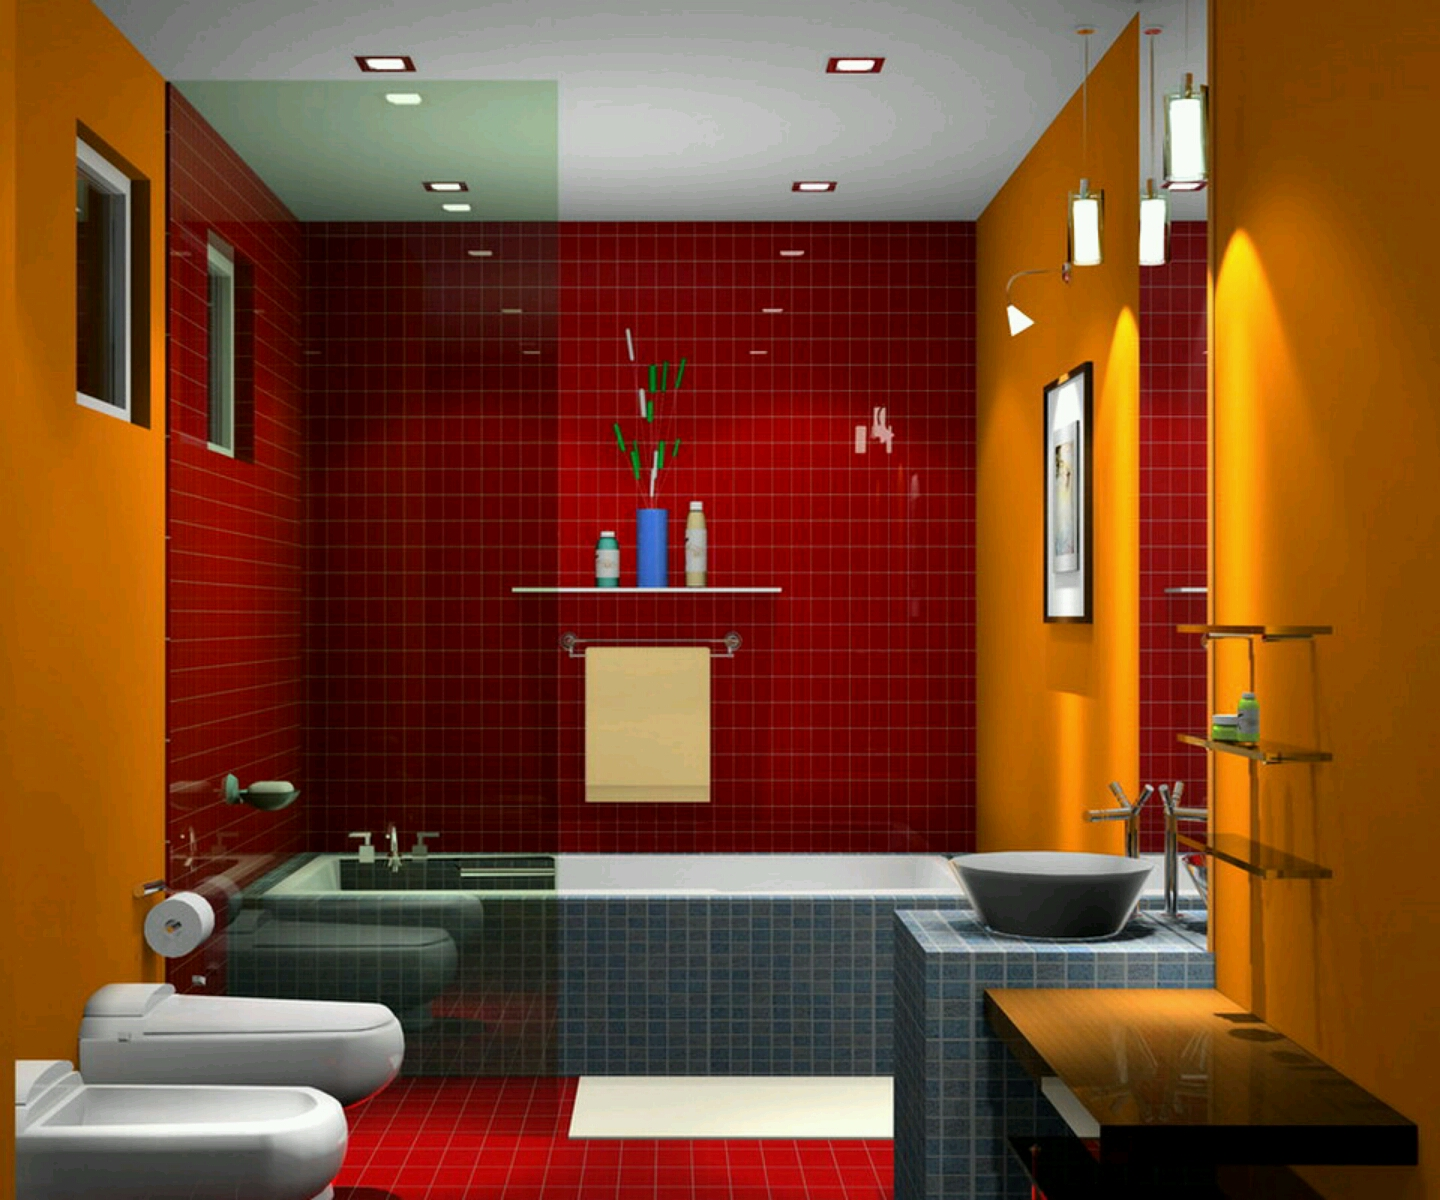 New home designs latest luxury bathrooms designs ideas for New bathroom ideas photos